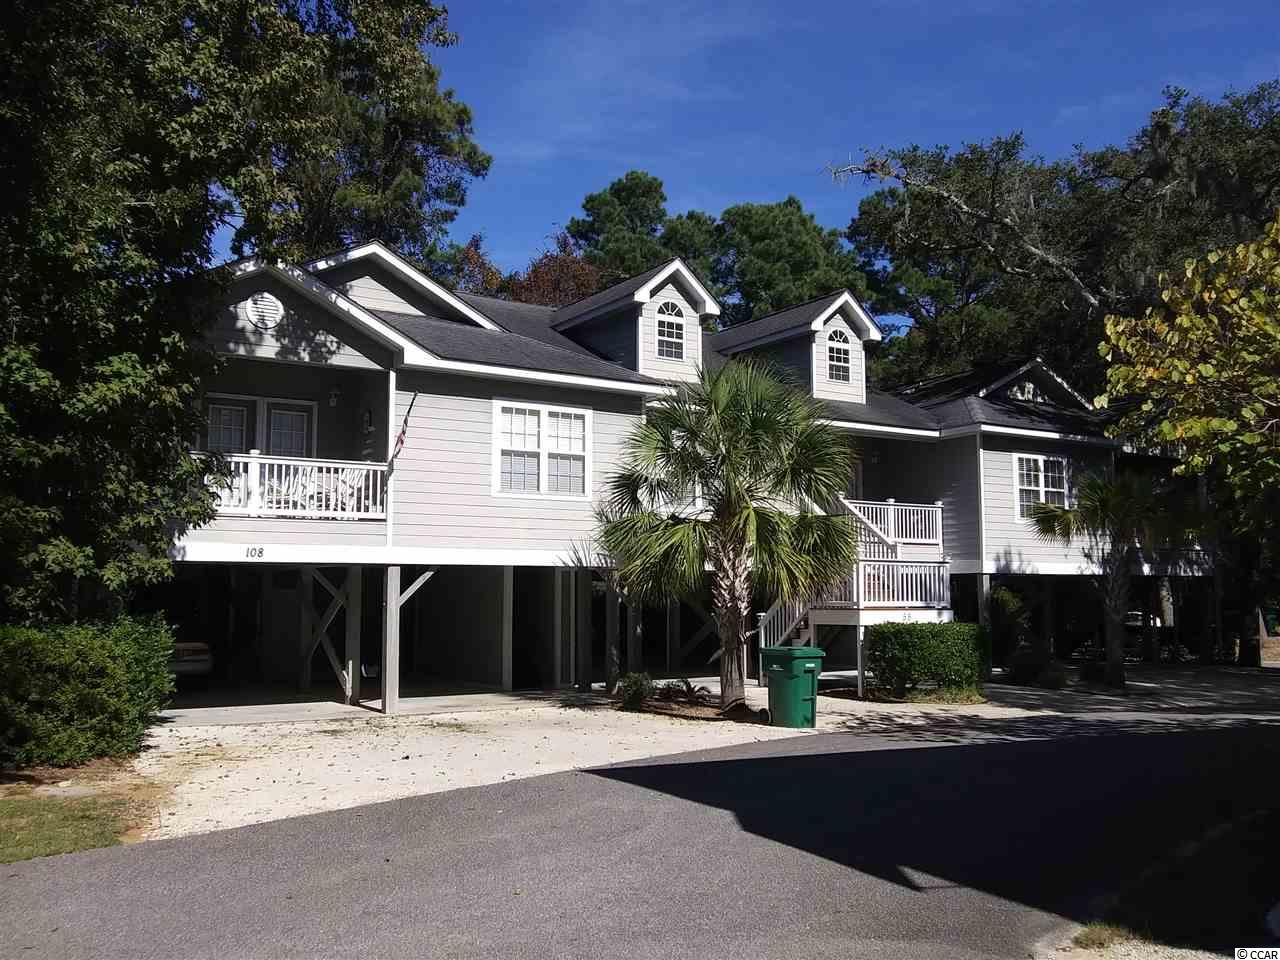 Come Enjoy this Beautiful 3 Bed, 2 Bath Raised Beach Home! Approximately 1250 Sq Ft of Heated Space & an additional 1250  sq Ft of Open space under this Raised Beach Style Home. Only Minutes from Litchfield & Pauleys Island Beaches! This Townhouse is located in a Private Community Surrounded by South Carolina's Magnificent Oaks draped in Spanish Moss, Close to All the Amenities yet has the Feeling of Living in the Country. The Home offers an Open Floor Plan with High Ceilings, Ceramic Tiled Floors in Kitchen with a Breakfast Bar, Master Bedrooms Bath & Walk in Closet, The Secondary and Third Bedroom is with a Jack & Jill Bath. Plenty of Parking Underneath the Home and Room for a Patio Setting. 2 Attached Storage Areas.